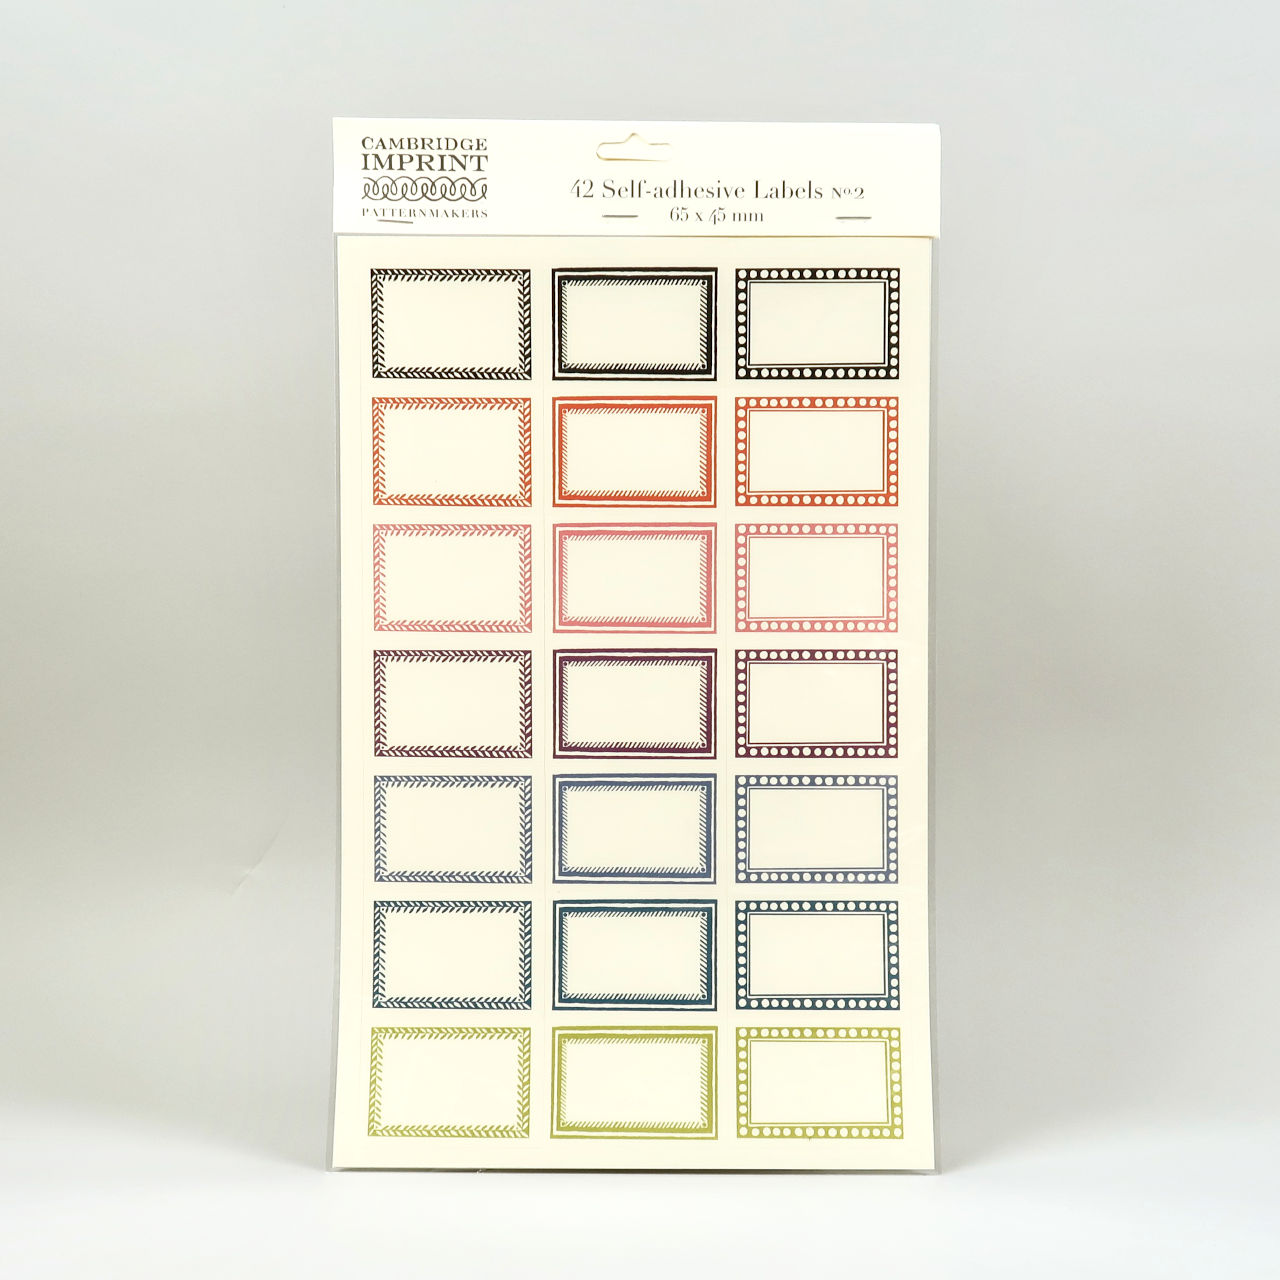 cambridge imprint labels 2